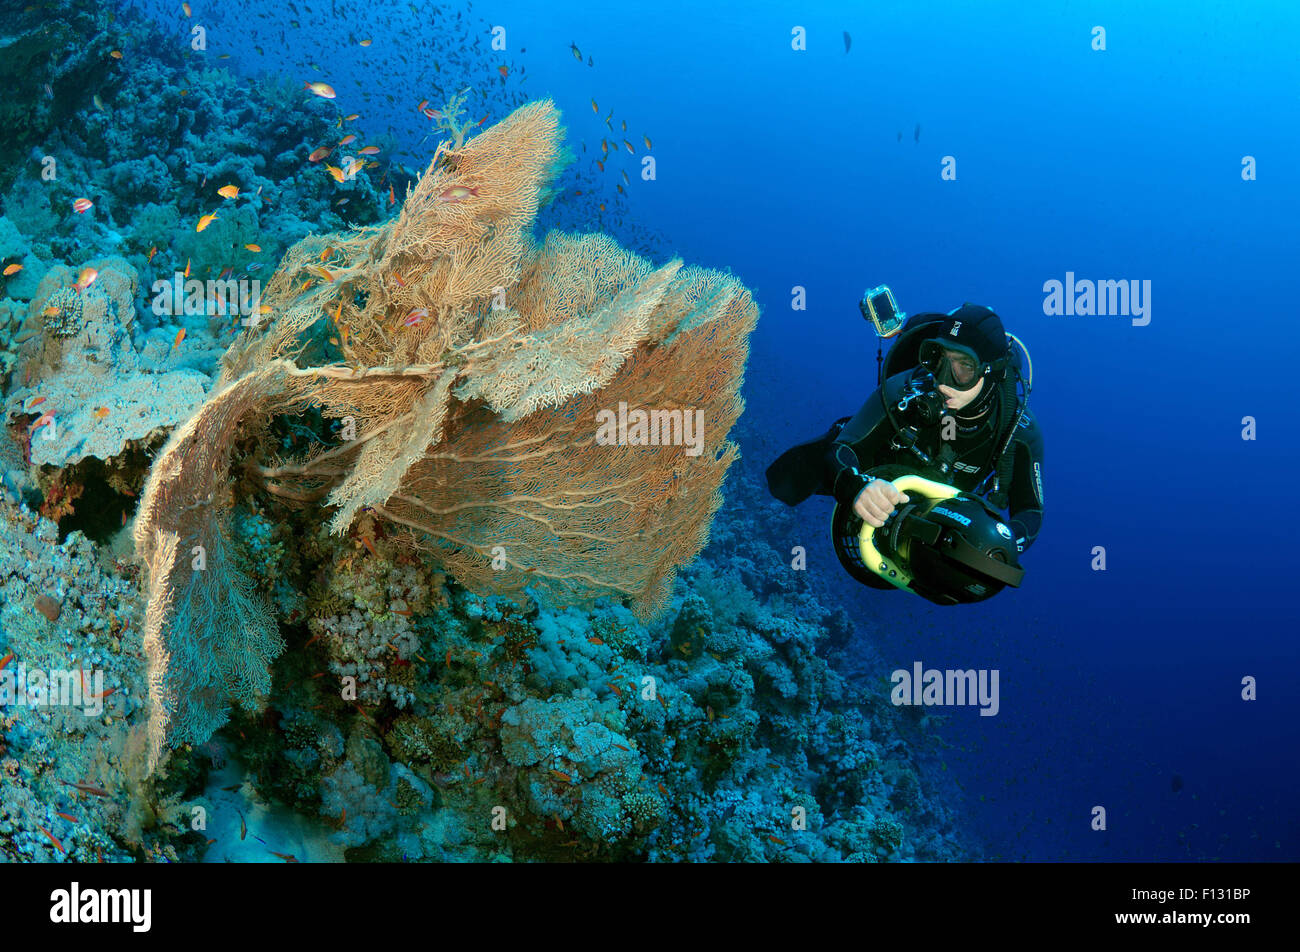 Red Sea, Egypt. 15th Oct, 2014. swims to underwater scooter near the soft coral Venus fan or Venus sea fan, common Stock Photo